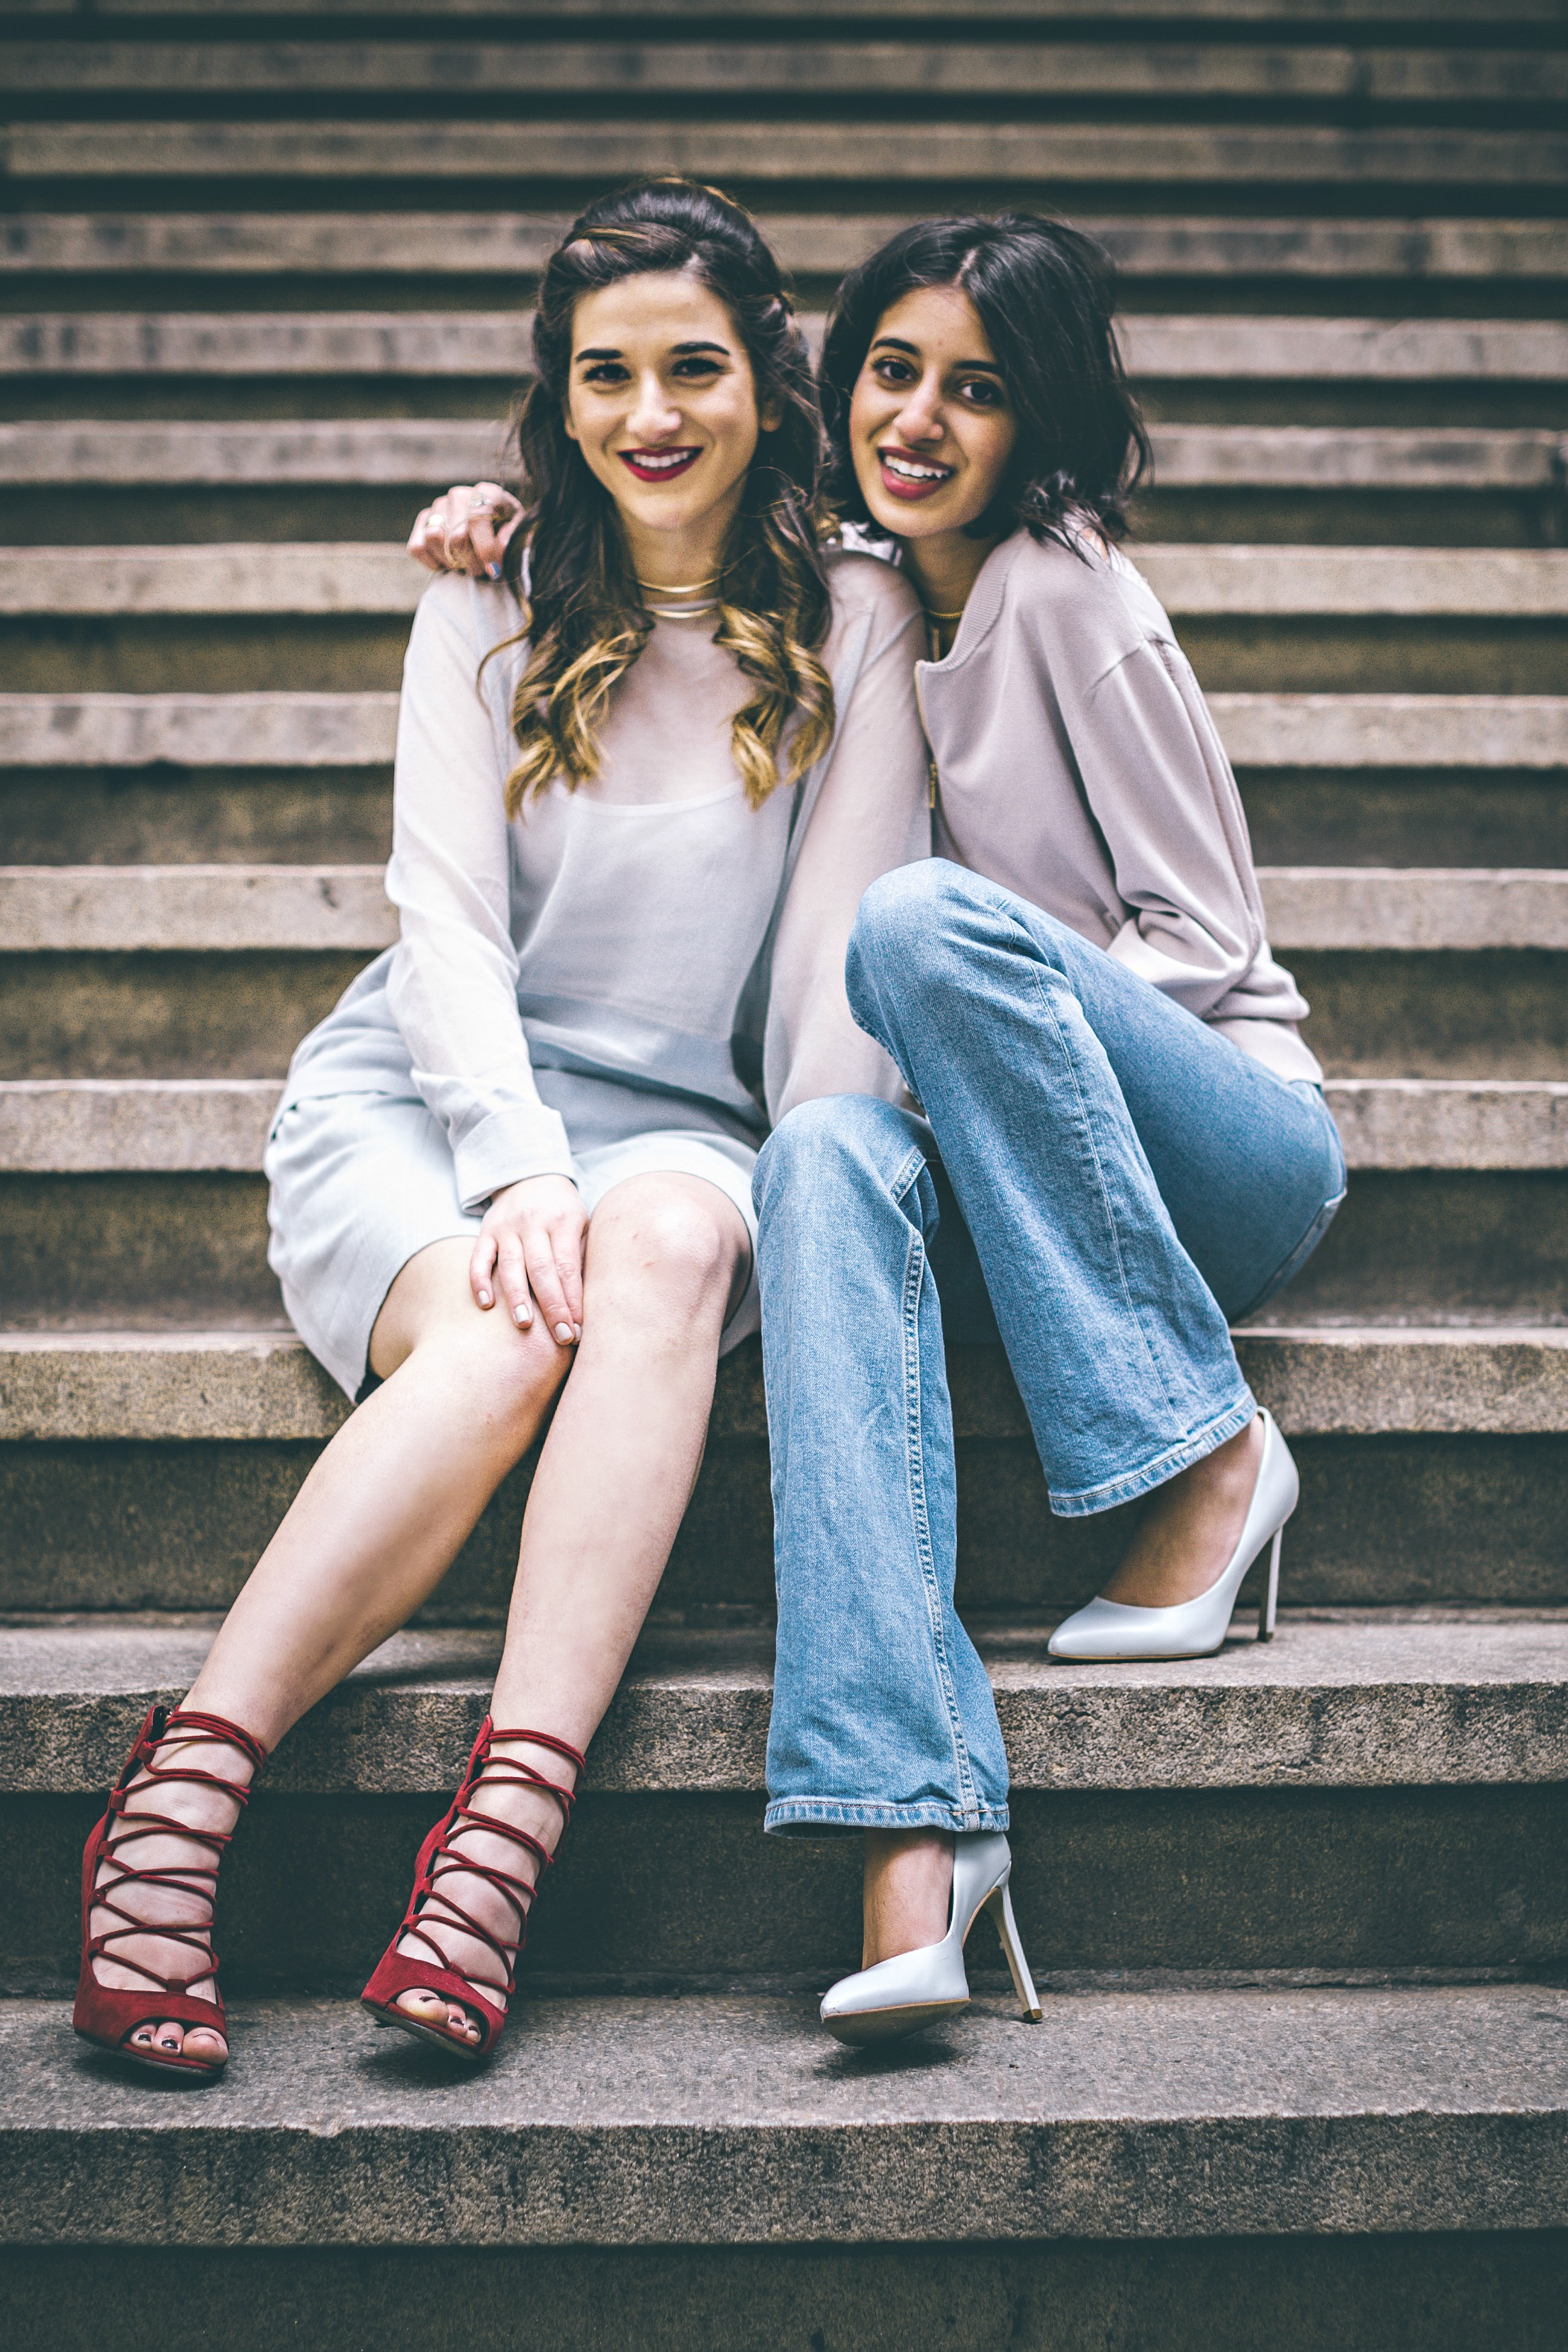 Louboutins & Love x Our Second Skin Photoshoot Collab Esther Santer NYC Street Style Fashion Blogger Anaa Saber Girls Women Matthew Pastula Photography Gold Jewelry Models Collar Necklace Monochrome Blue Skirt Sheer Top Outfit Shoes Look Lace-Up Heels.jpg